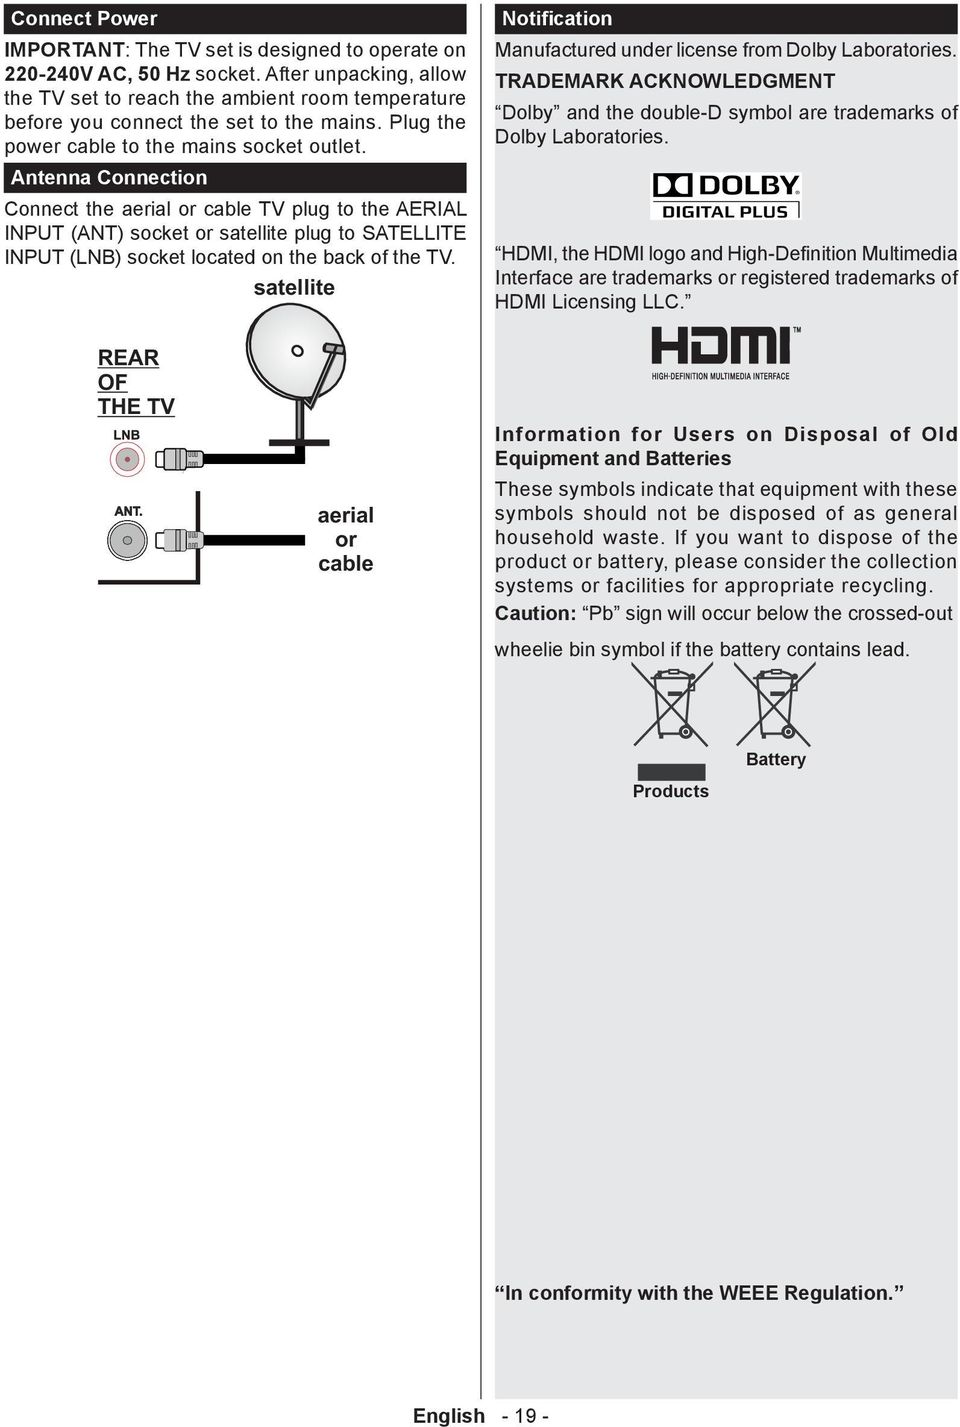 Antenna Connection Connect the aerial or cable TV plug to the AERIAL INPUT (ANT) socket or satellite plug to SATELLITE INPUT (LNB) socket located on the back of the TV.